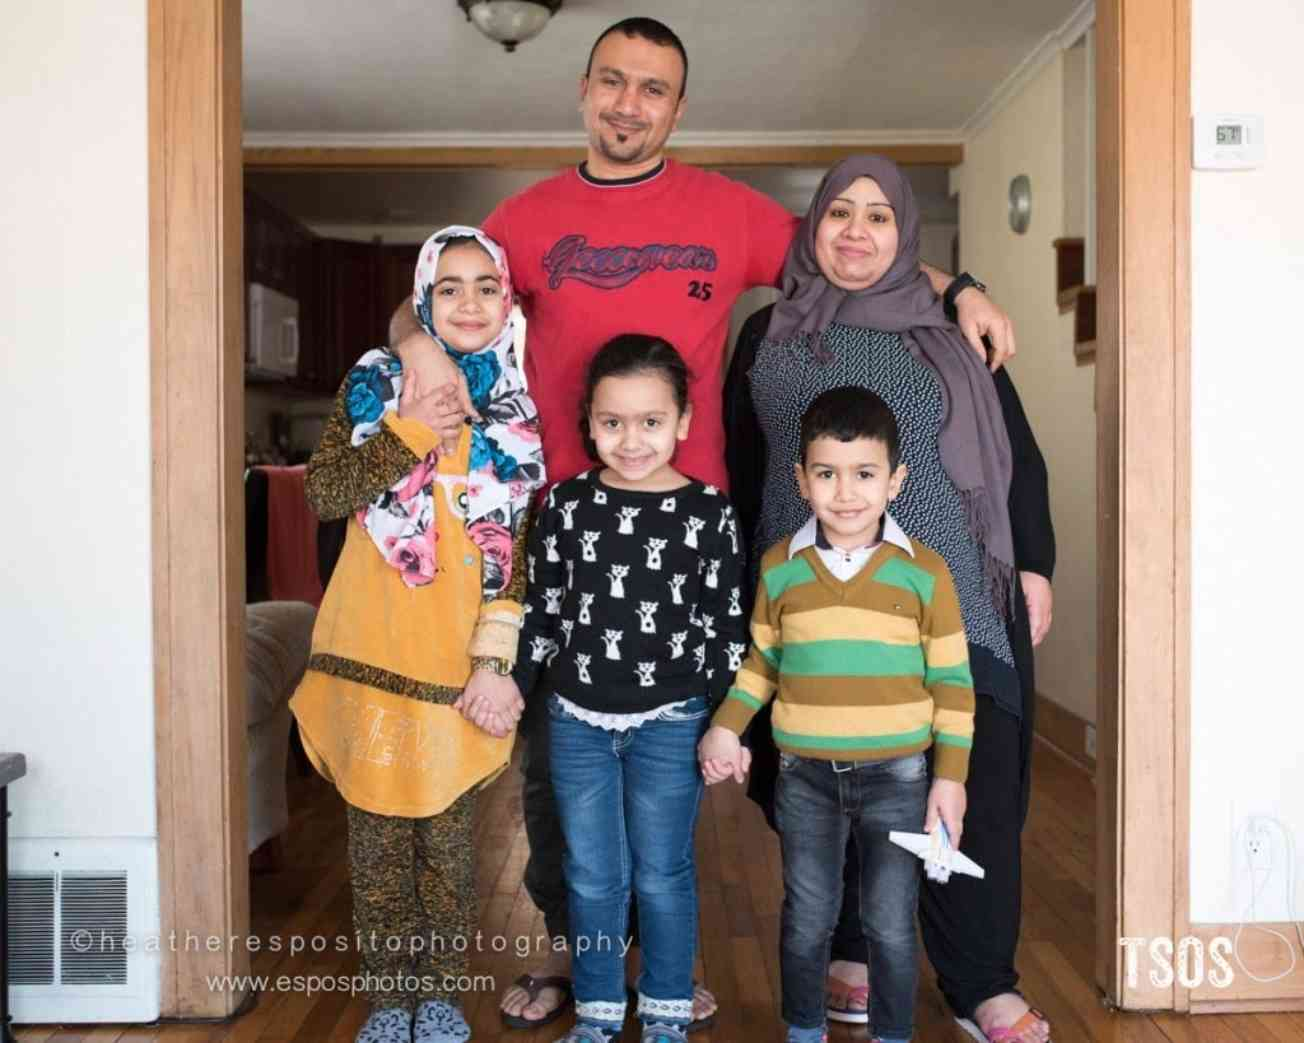 Mohammad and his family